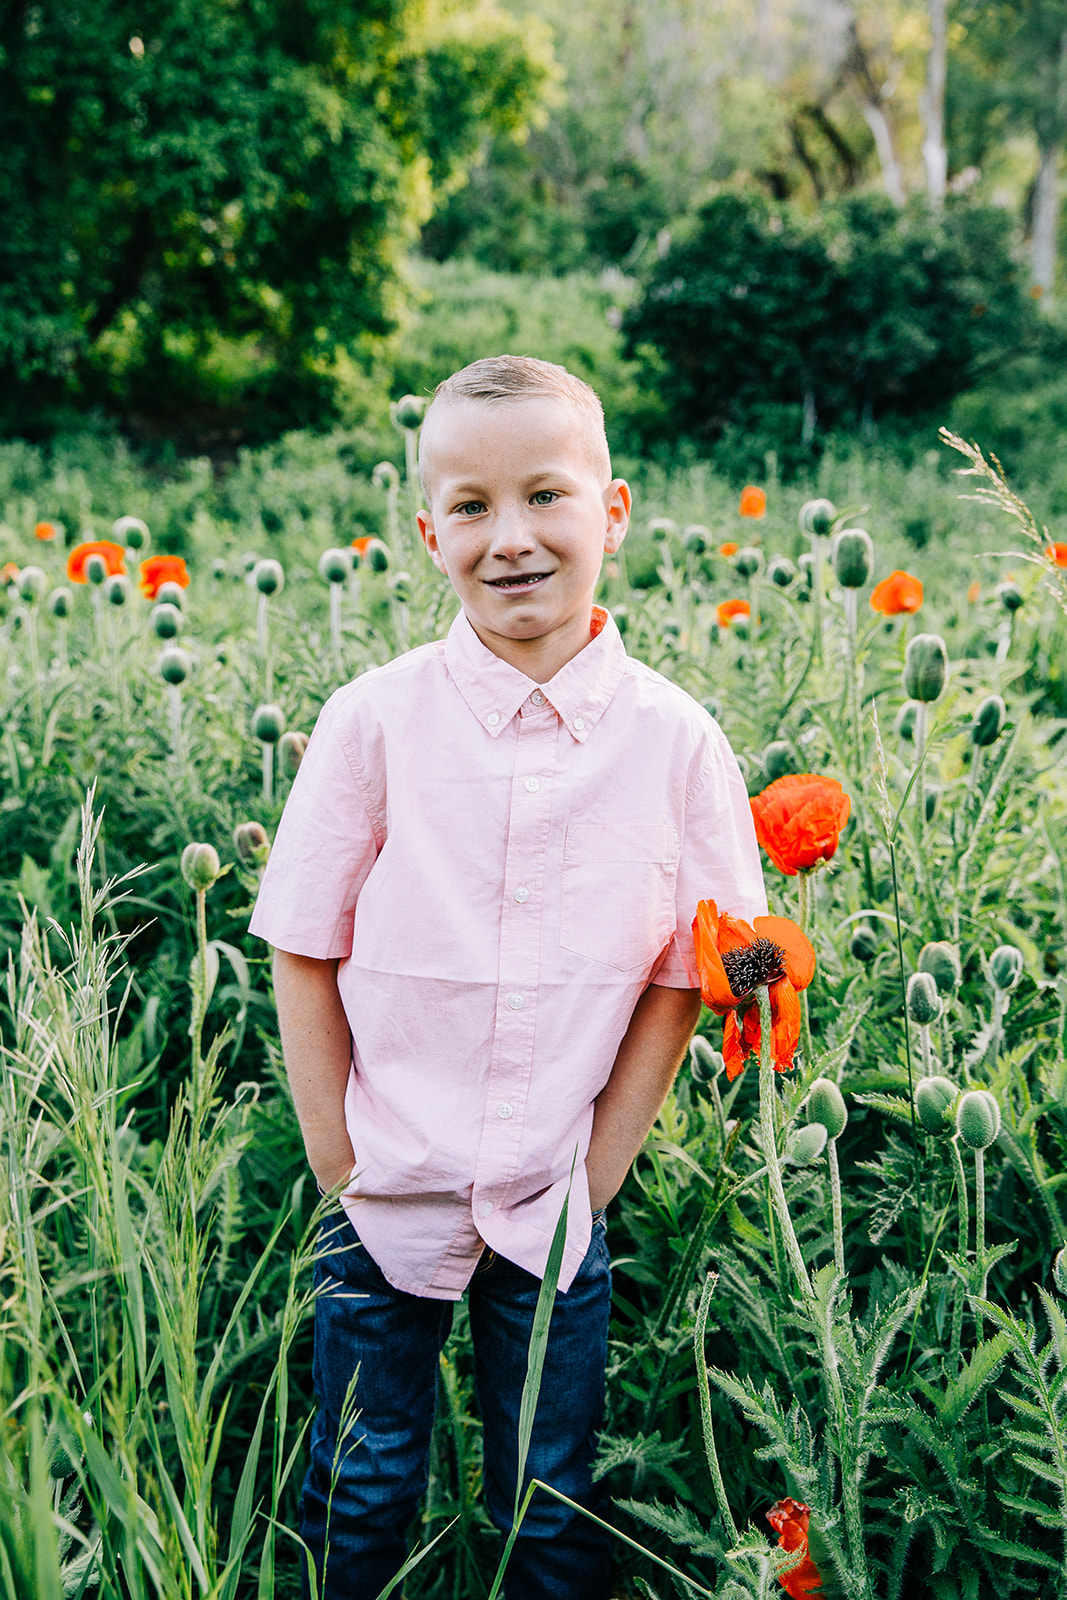 Family pictures in the red poppy fields in Mantua, Utah Cache Valley Family Photographer Bella Alder is so great with kids getting adorable smiles out of the fussiest of children during your family session! #bellaalderphoto #familyphotog #familyphotography #familypictures #familyphotos #outfitinspo #familyoutfits #poppyfields #northernutahfamilyphotographer #utahfamilyphotographer #cachevalleyfamilyphotographer